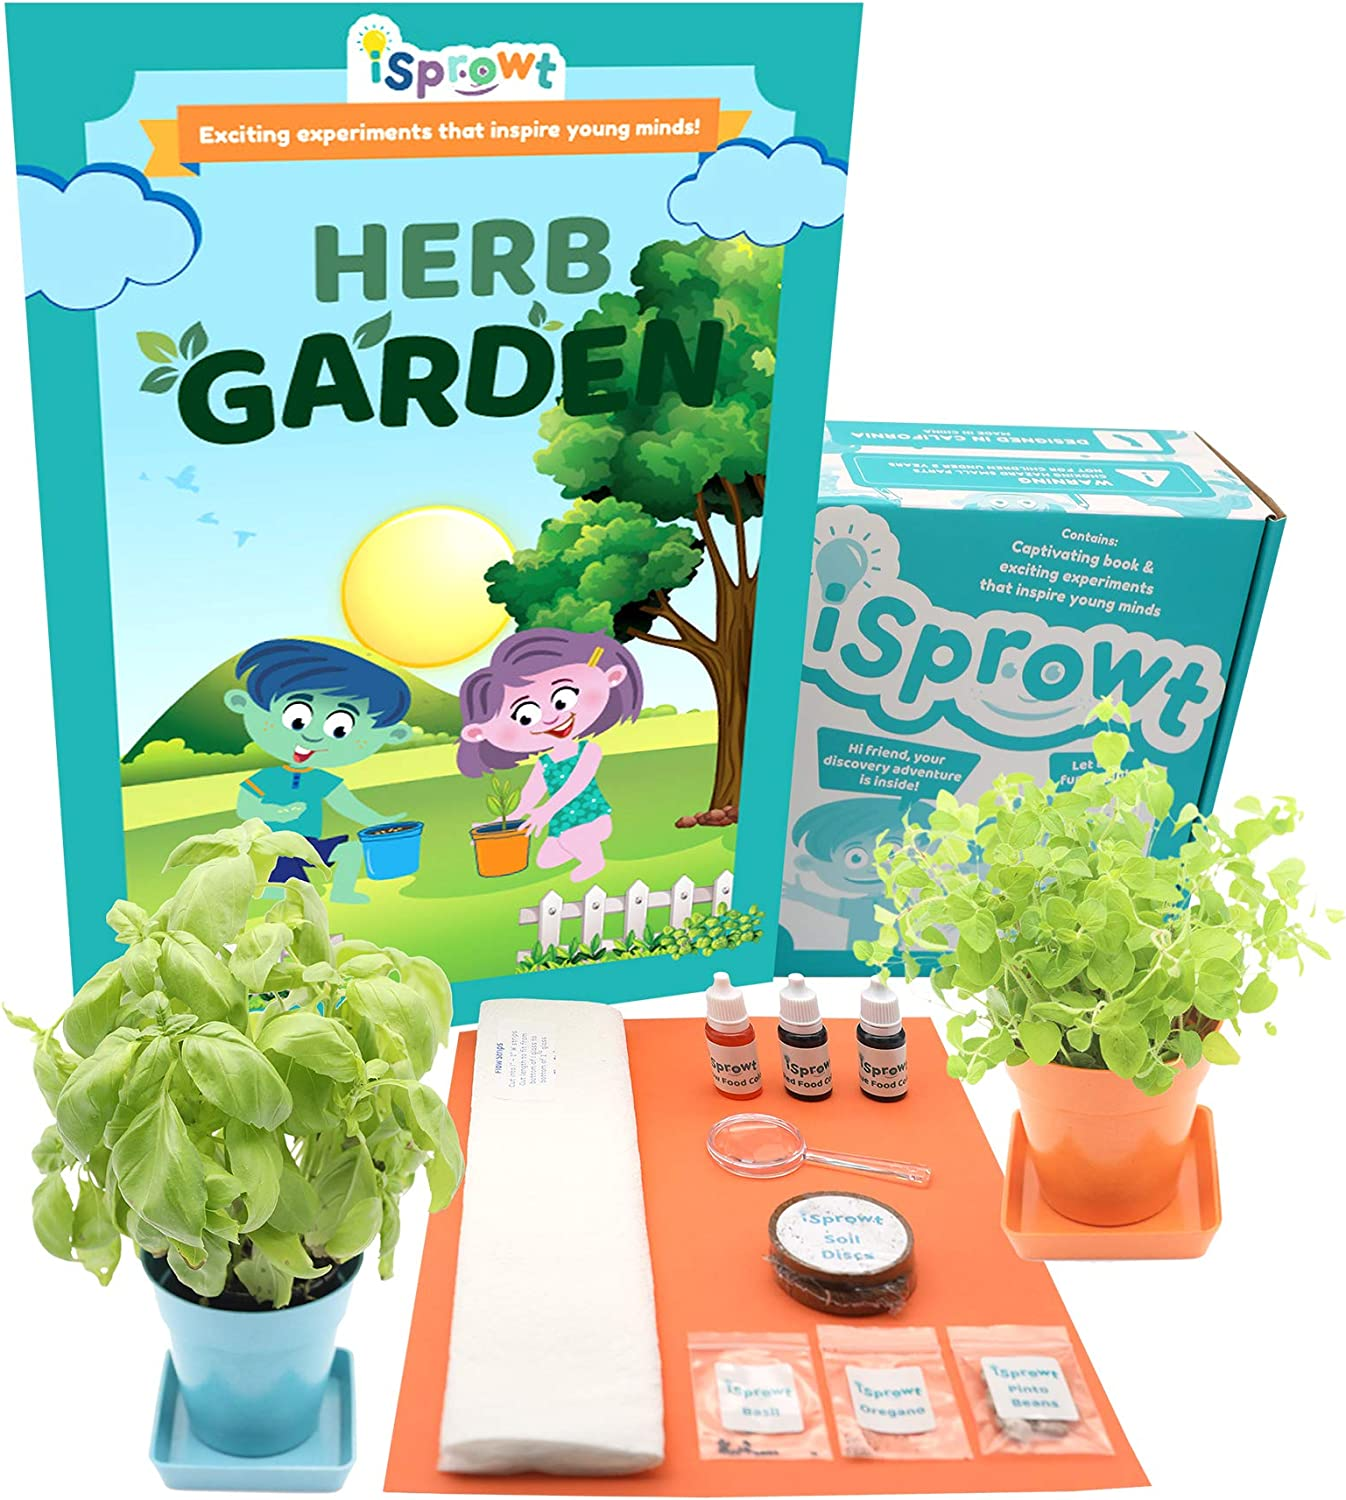 iSprowt Herb Garden Science Kit for Kids Ages 5-11, STEM Activities and Science Experiments for Kids, Gardening Kit for Kids, Earth Science Projects, Educational Kids Toys